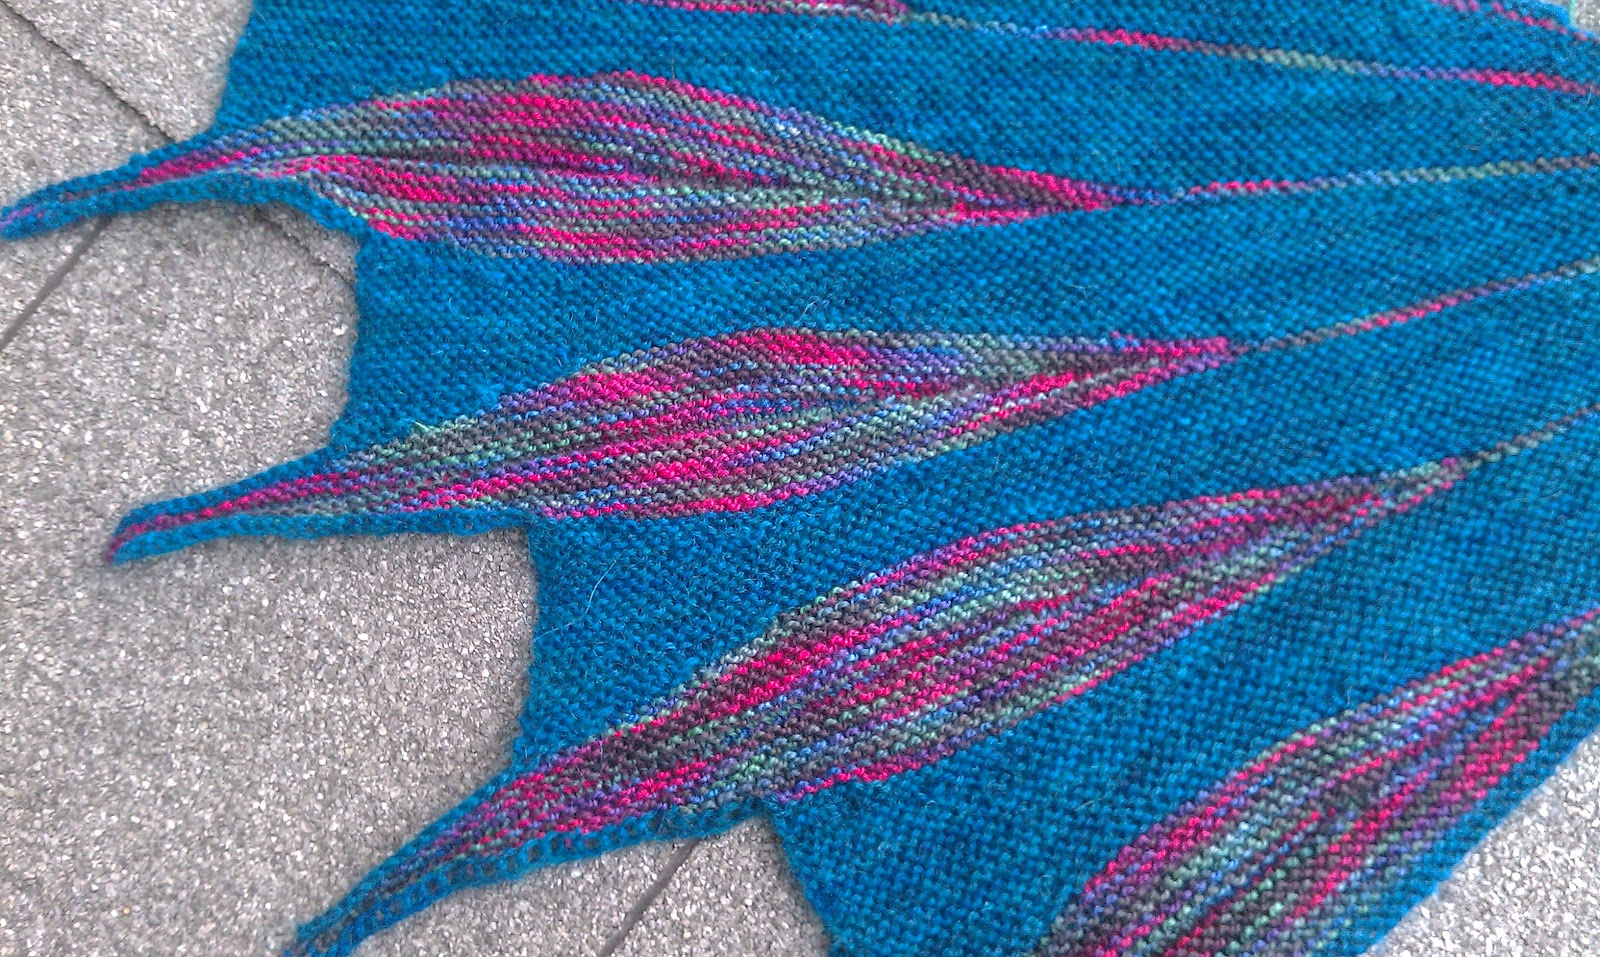 OceanKnitter: Dreambird and a Swing Knitting Class